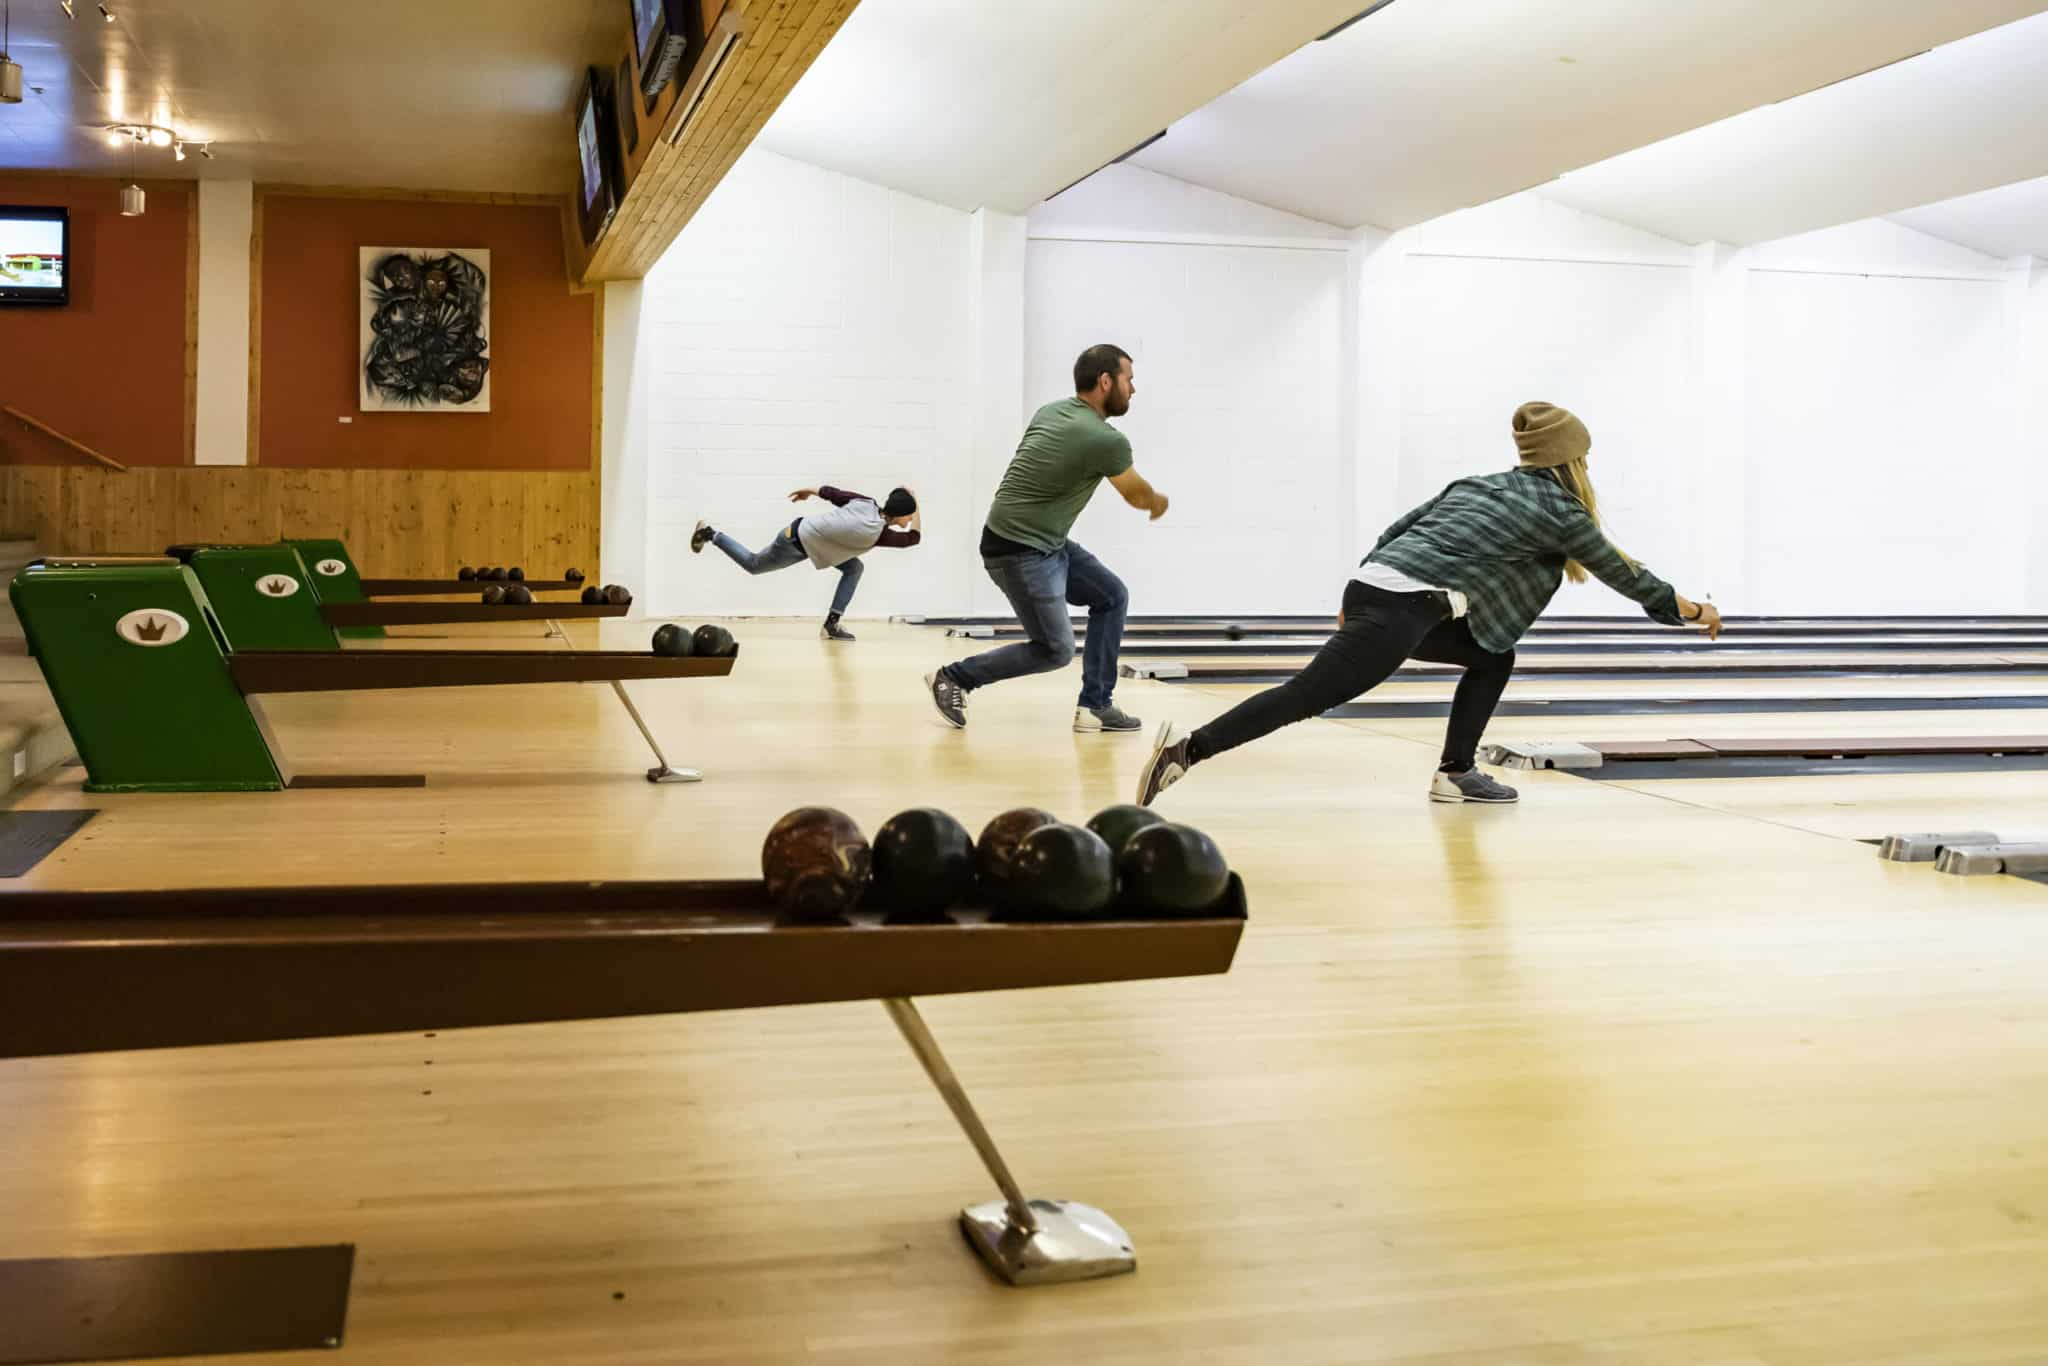 cabin-bowling-activity-hywelwilliams